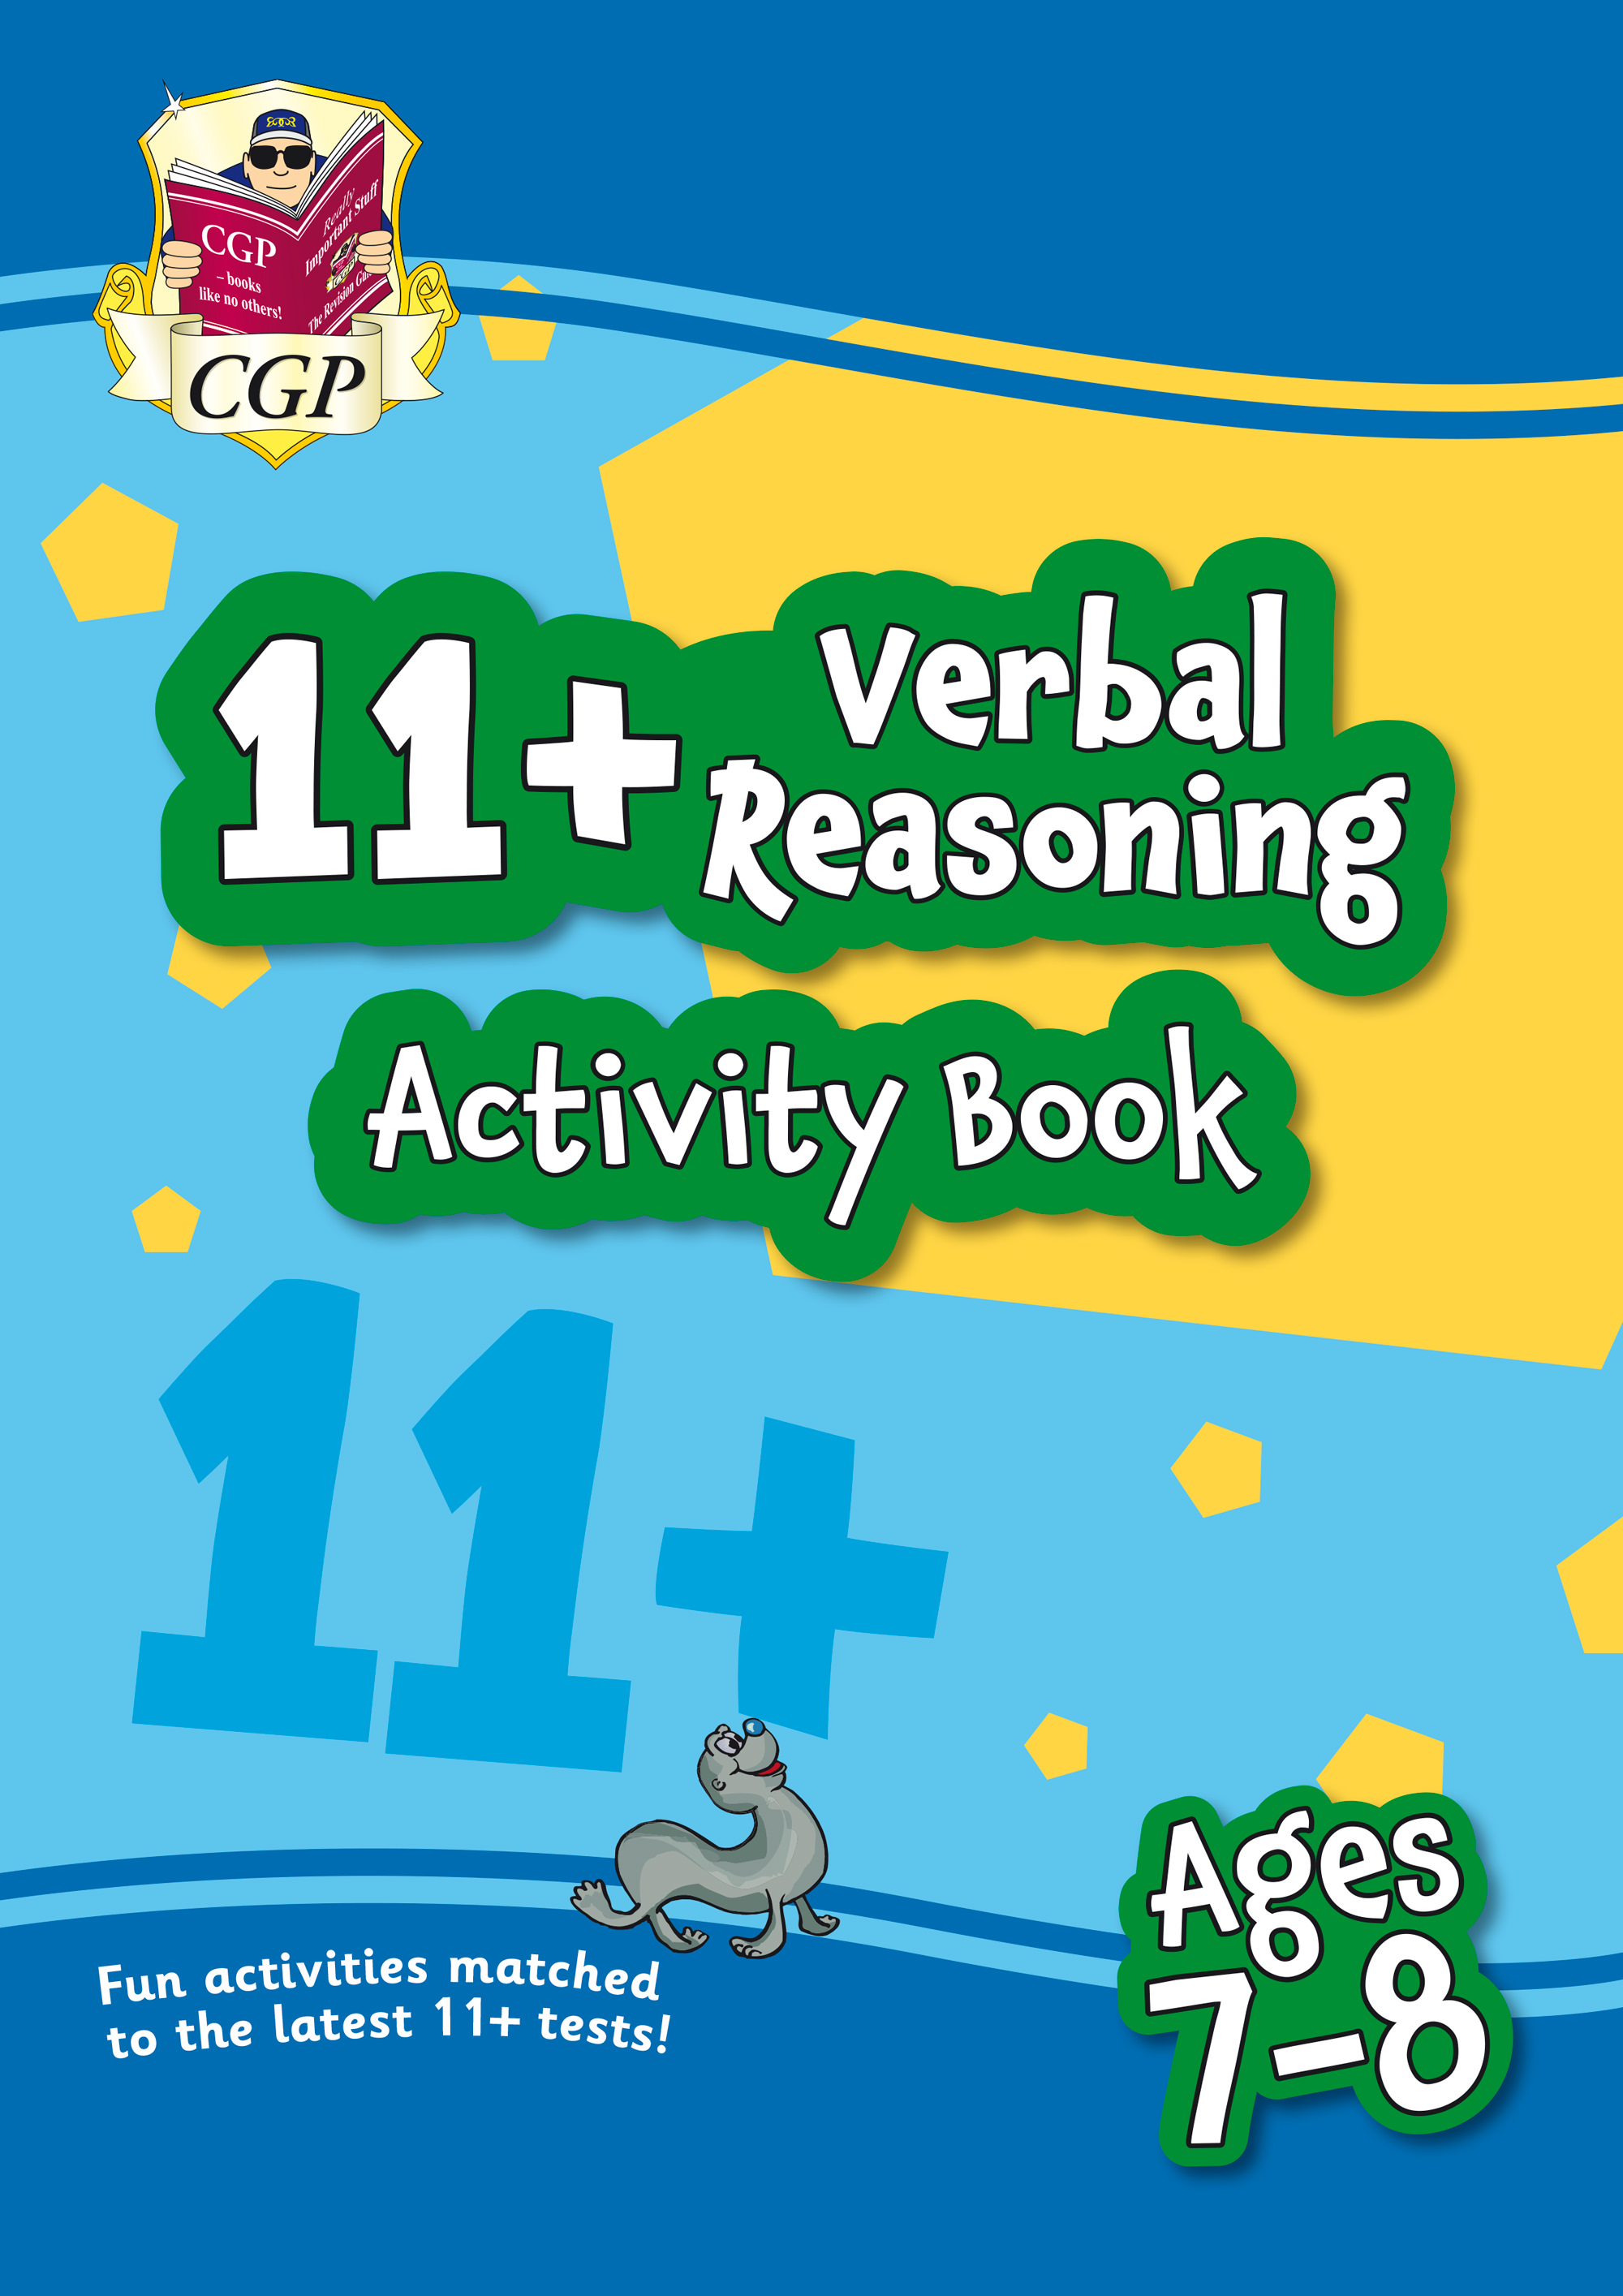 VF3QE1 - New 11+ Activity Book: Verbal Reasoning - Ages 7-8